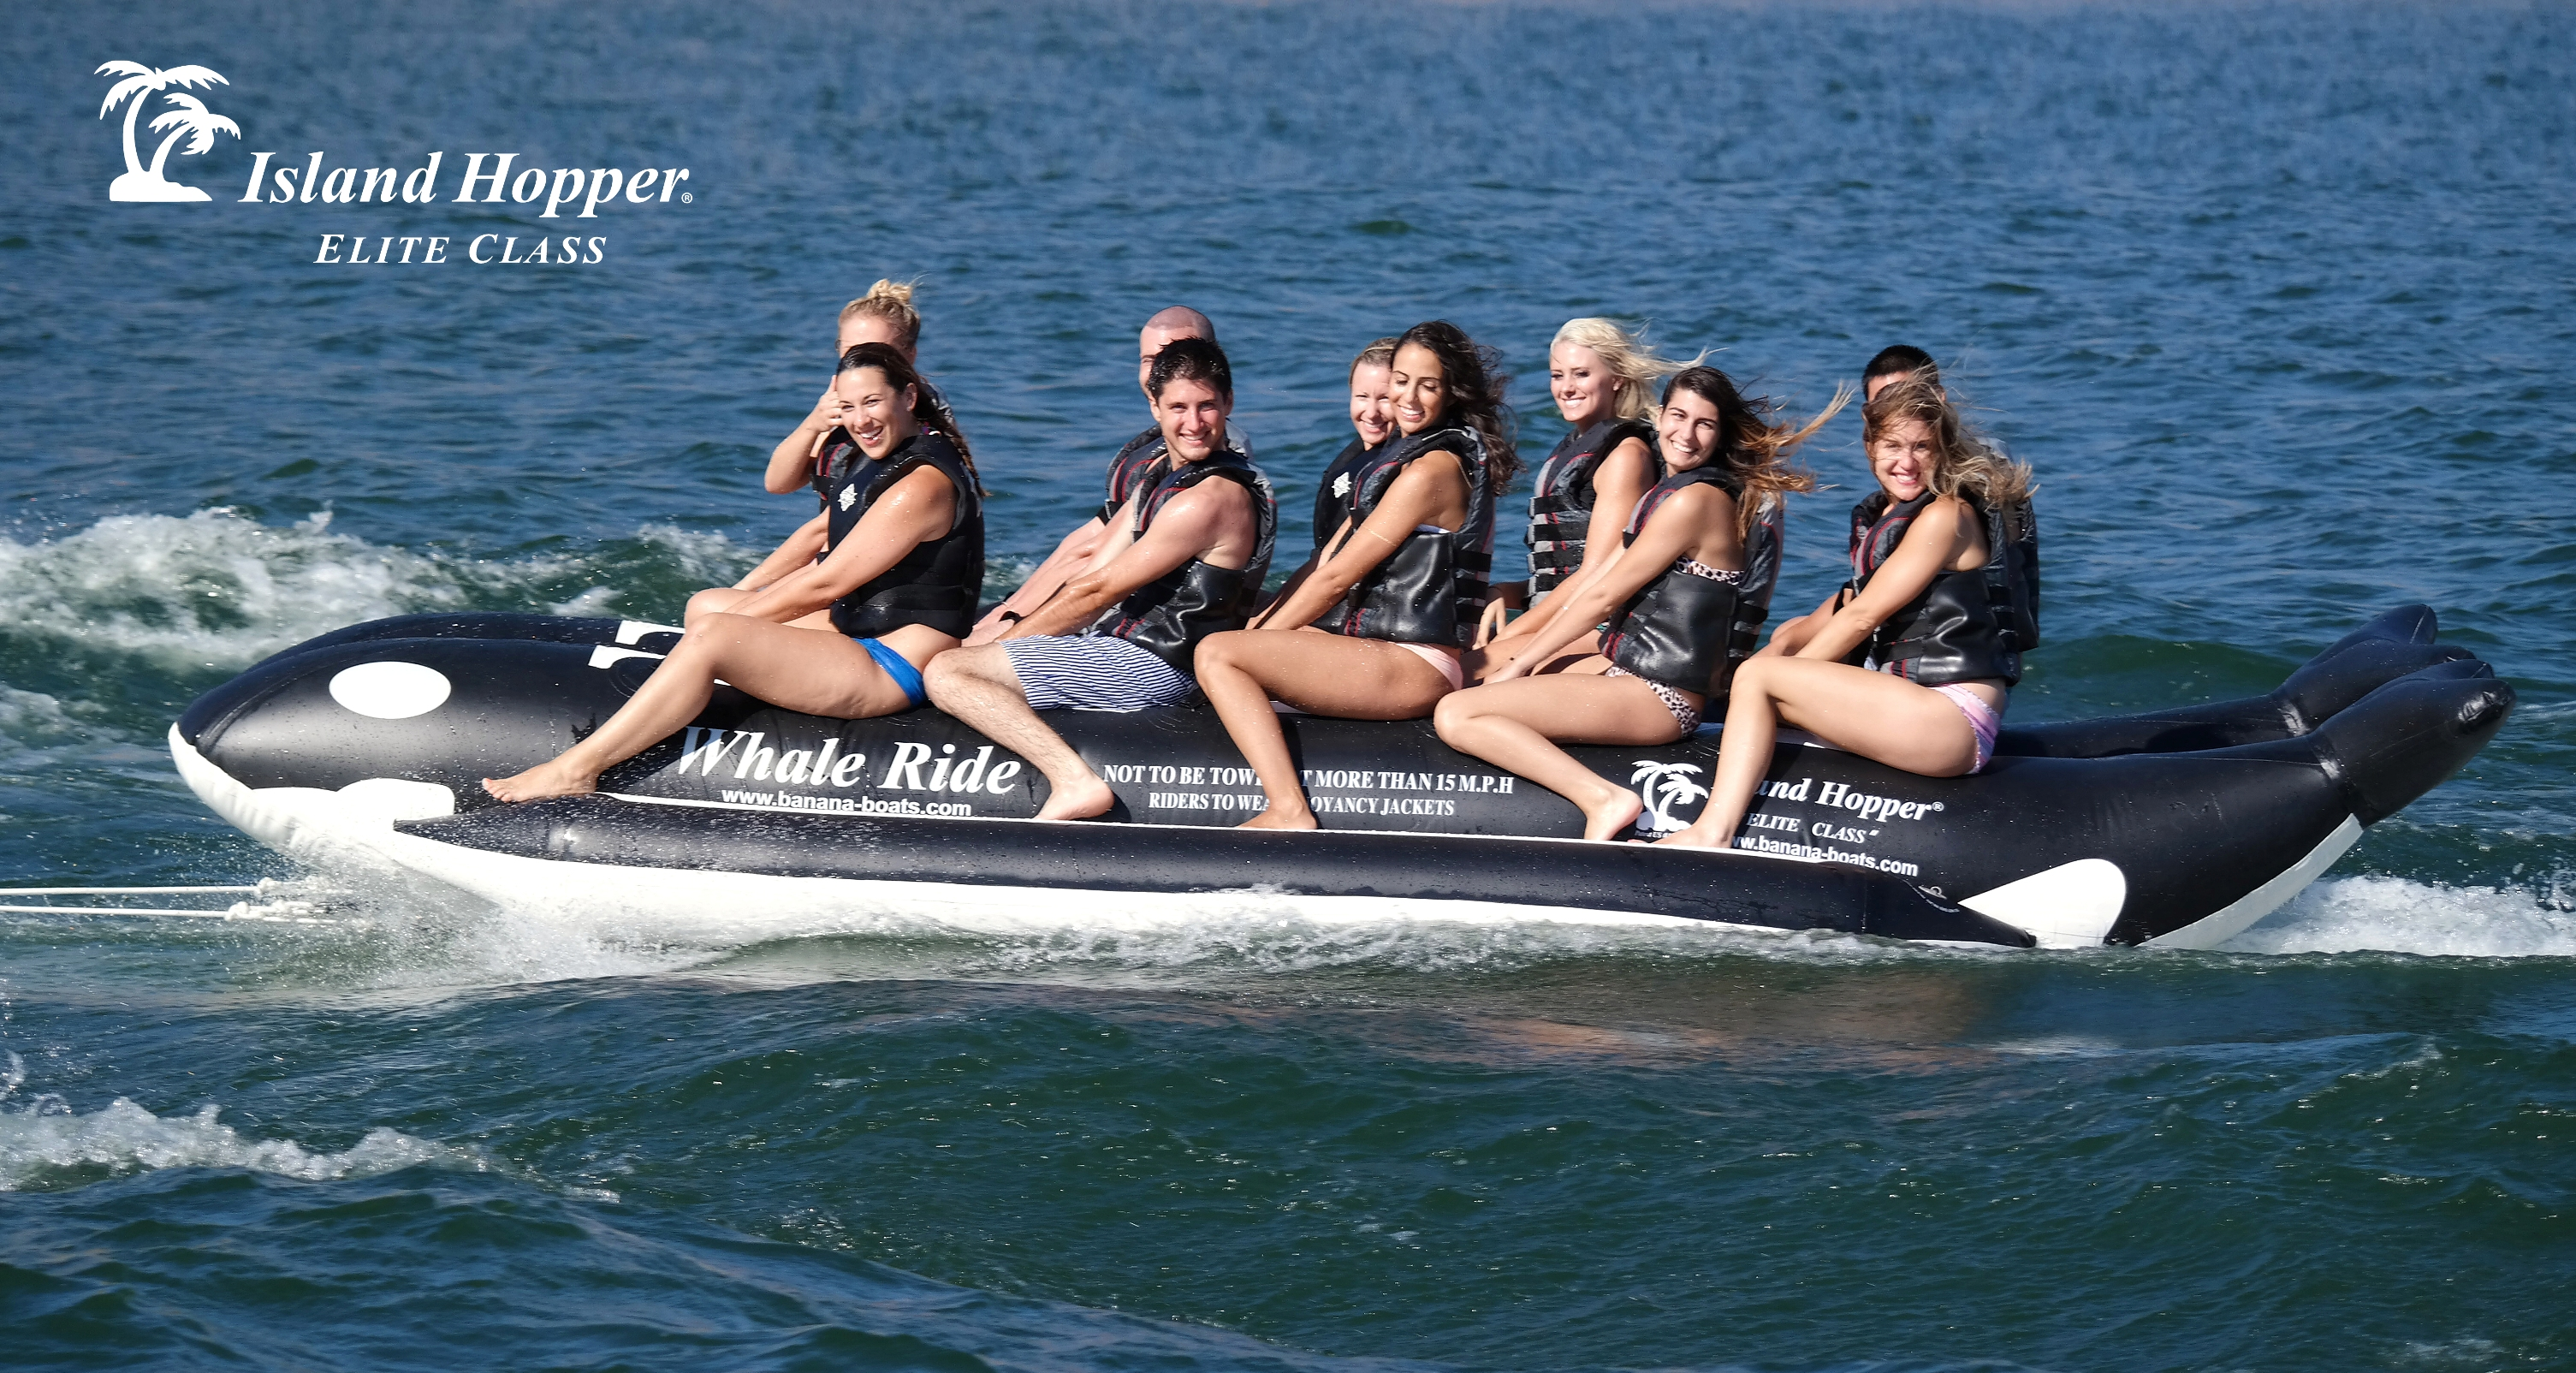 Whale Ride 10 Passenger Elite Class Banana Boat Heavy Commercial Inflatable Towing Harness Island Hopper Person Rider